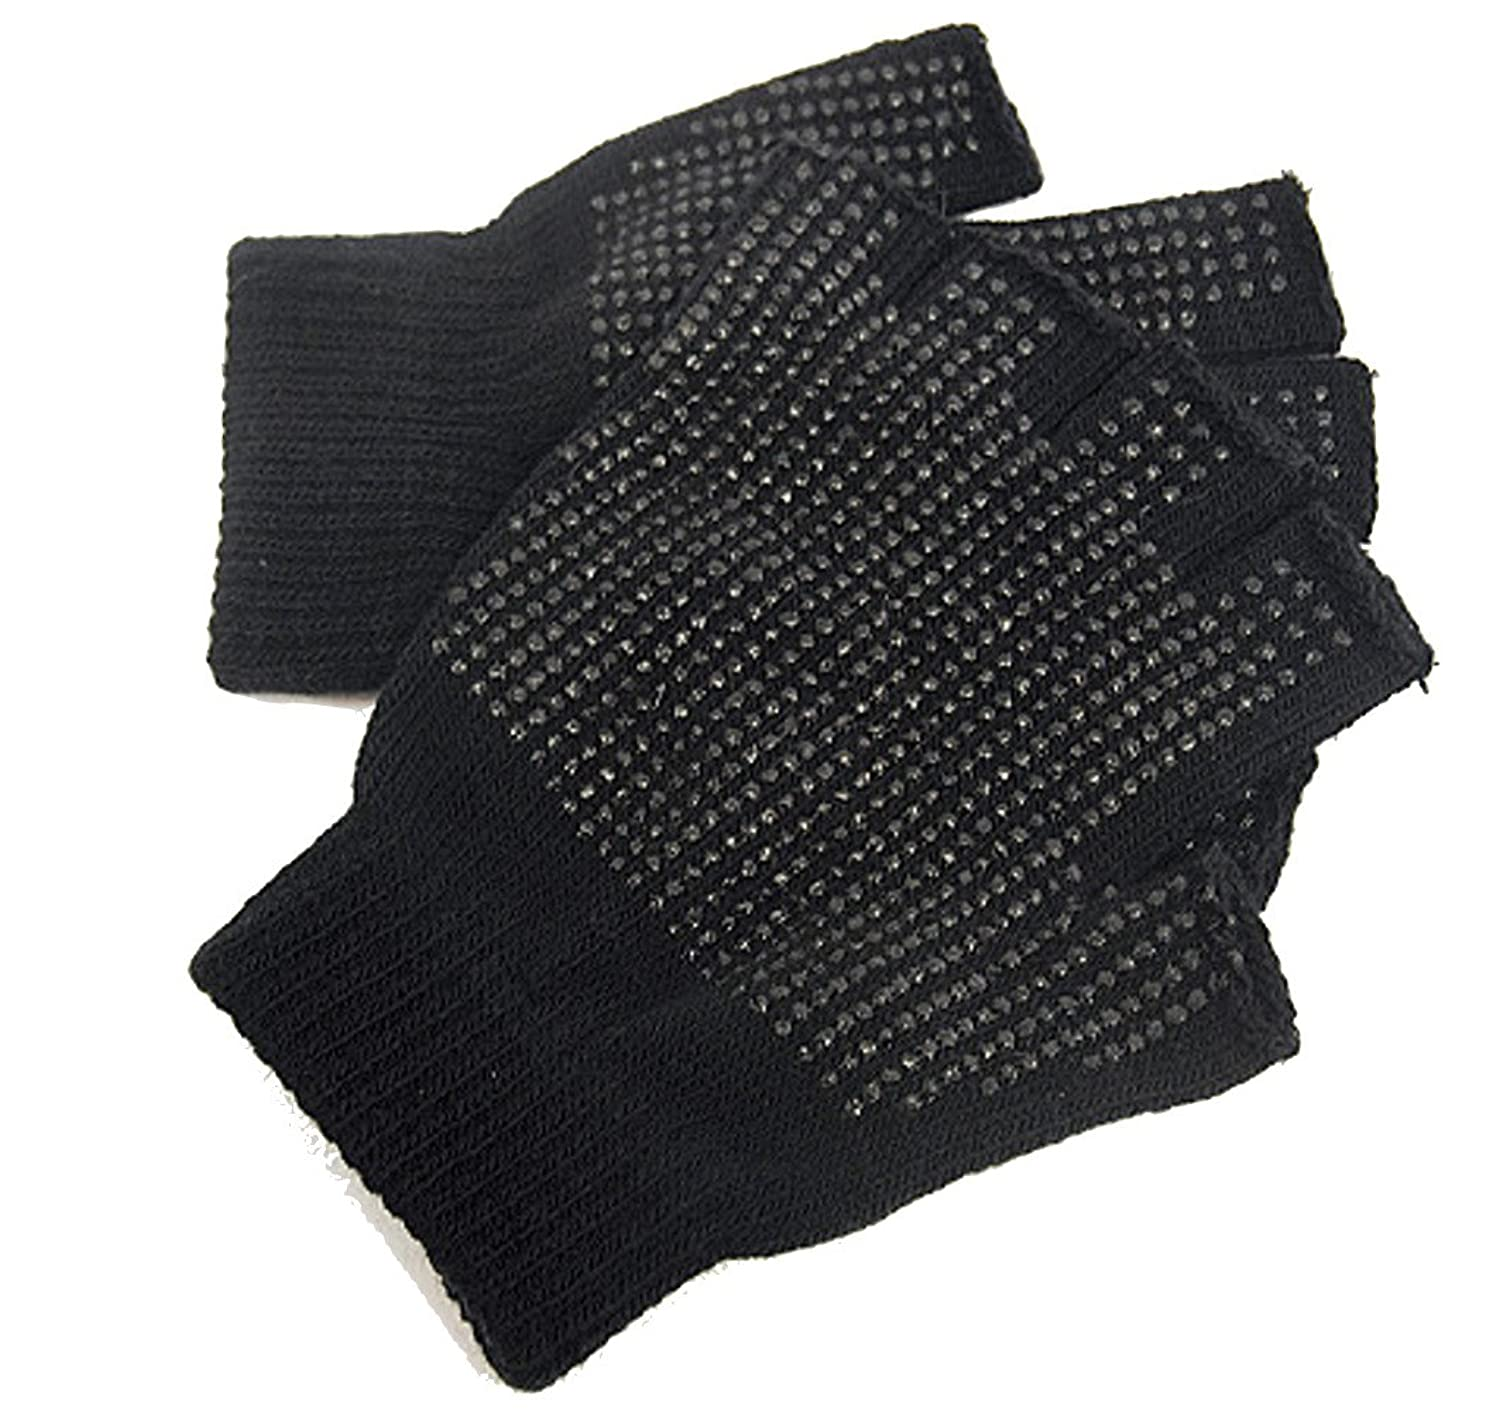 2 x Pairs Adults Black Fingerless Gripper Gloves - One Size, men or ...